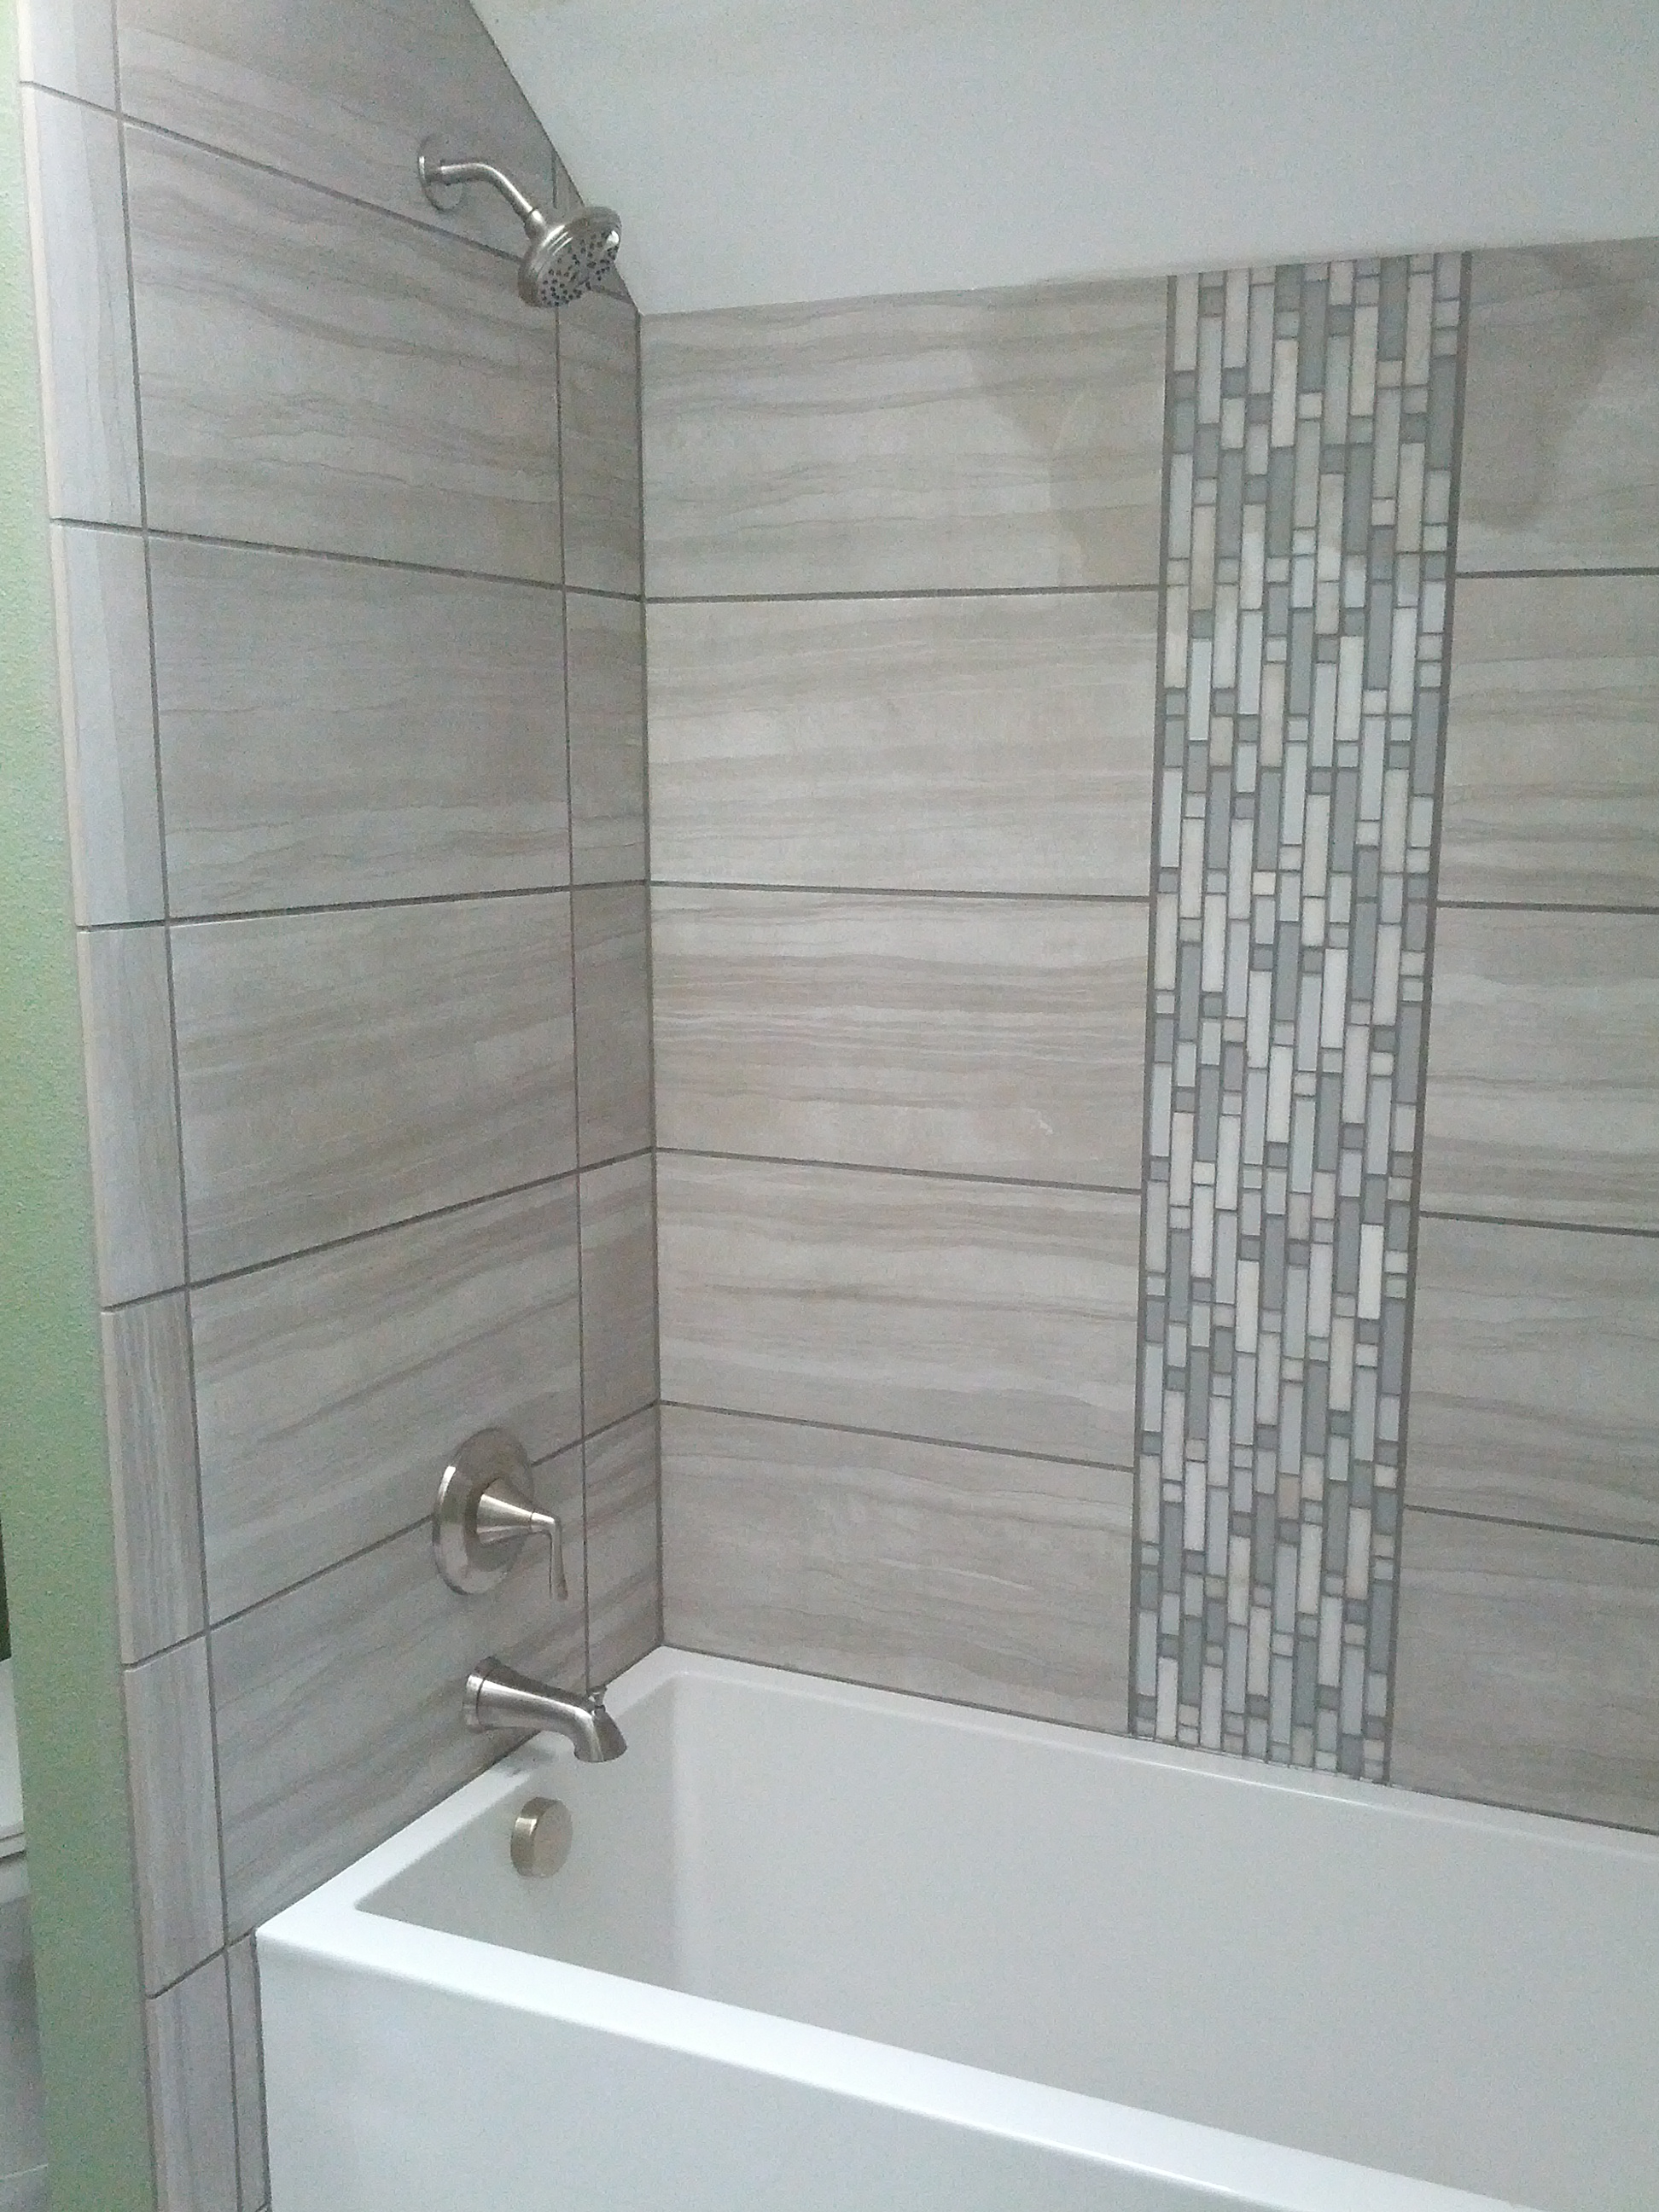 Shower that we plumbed